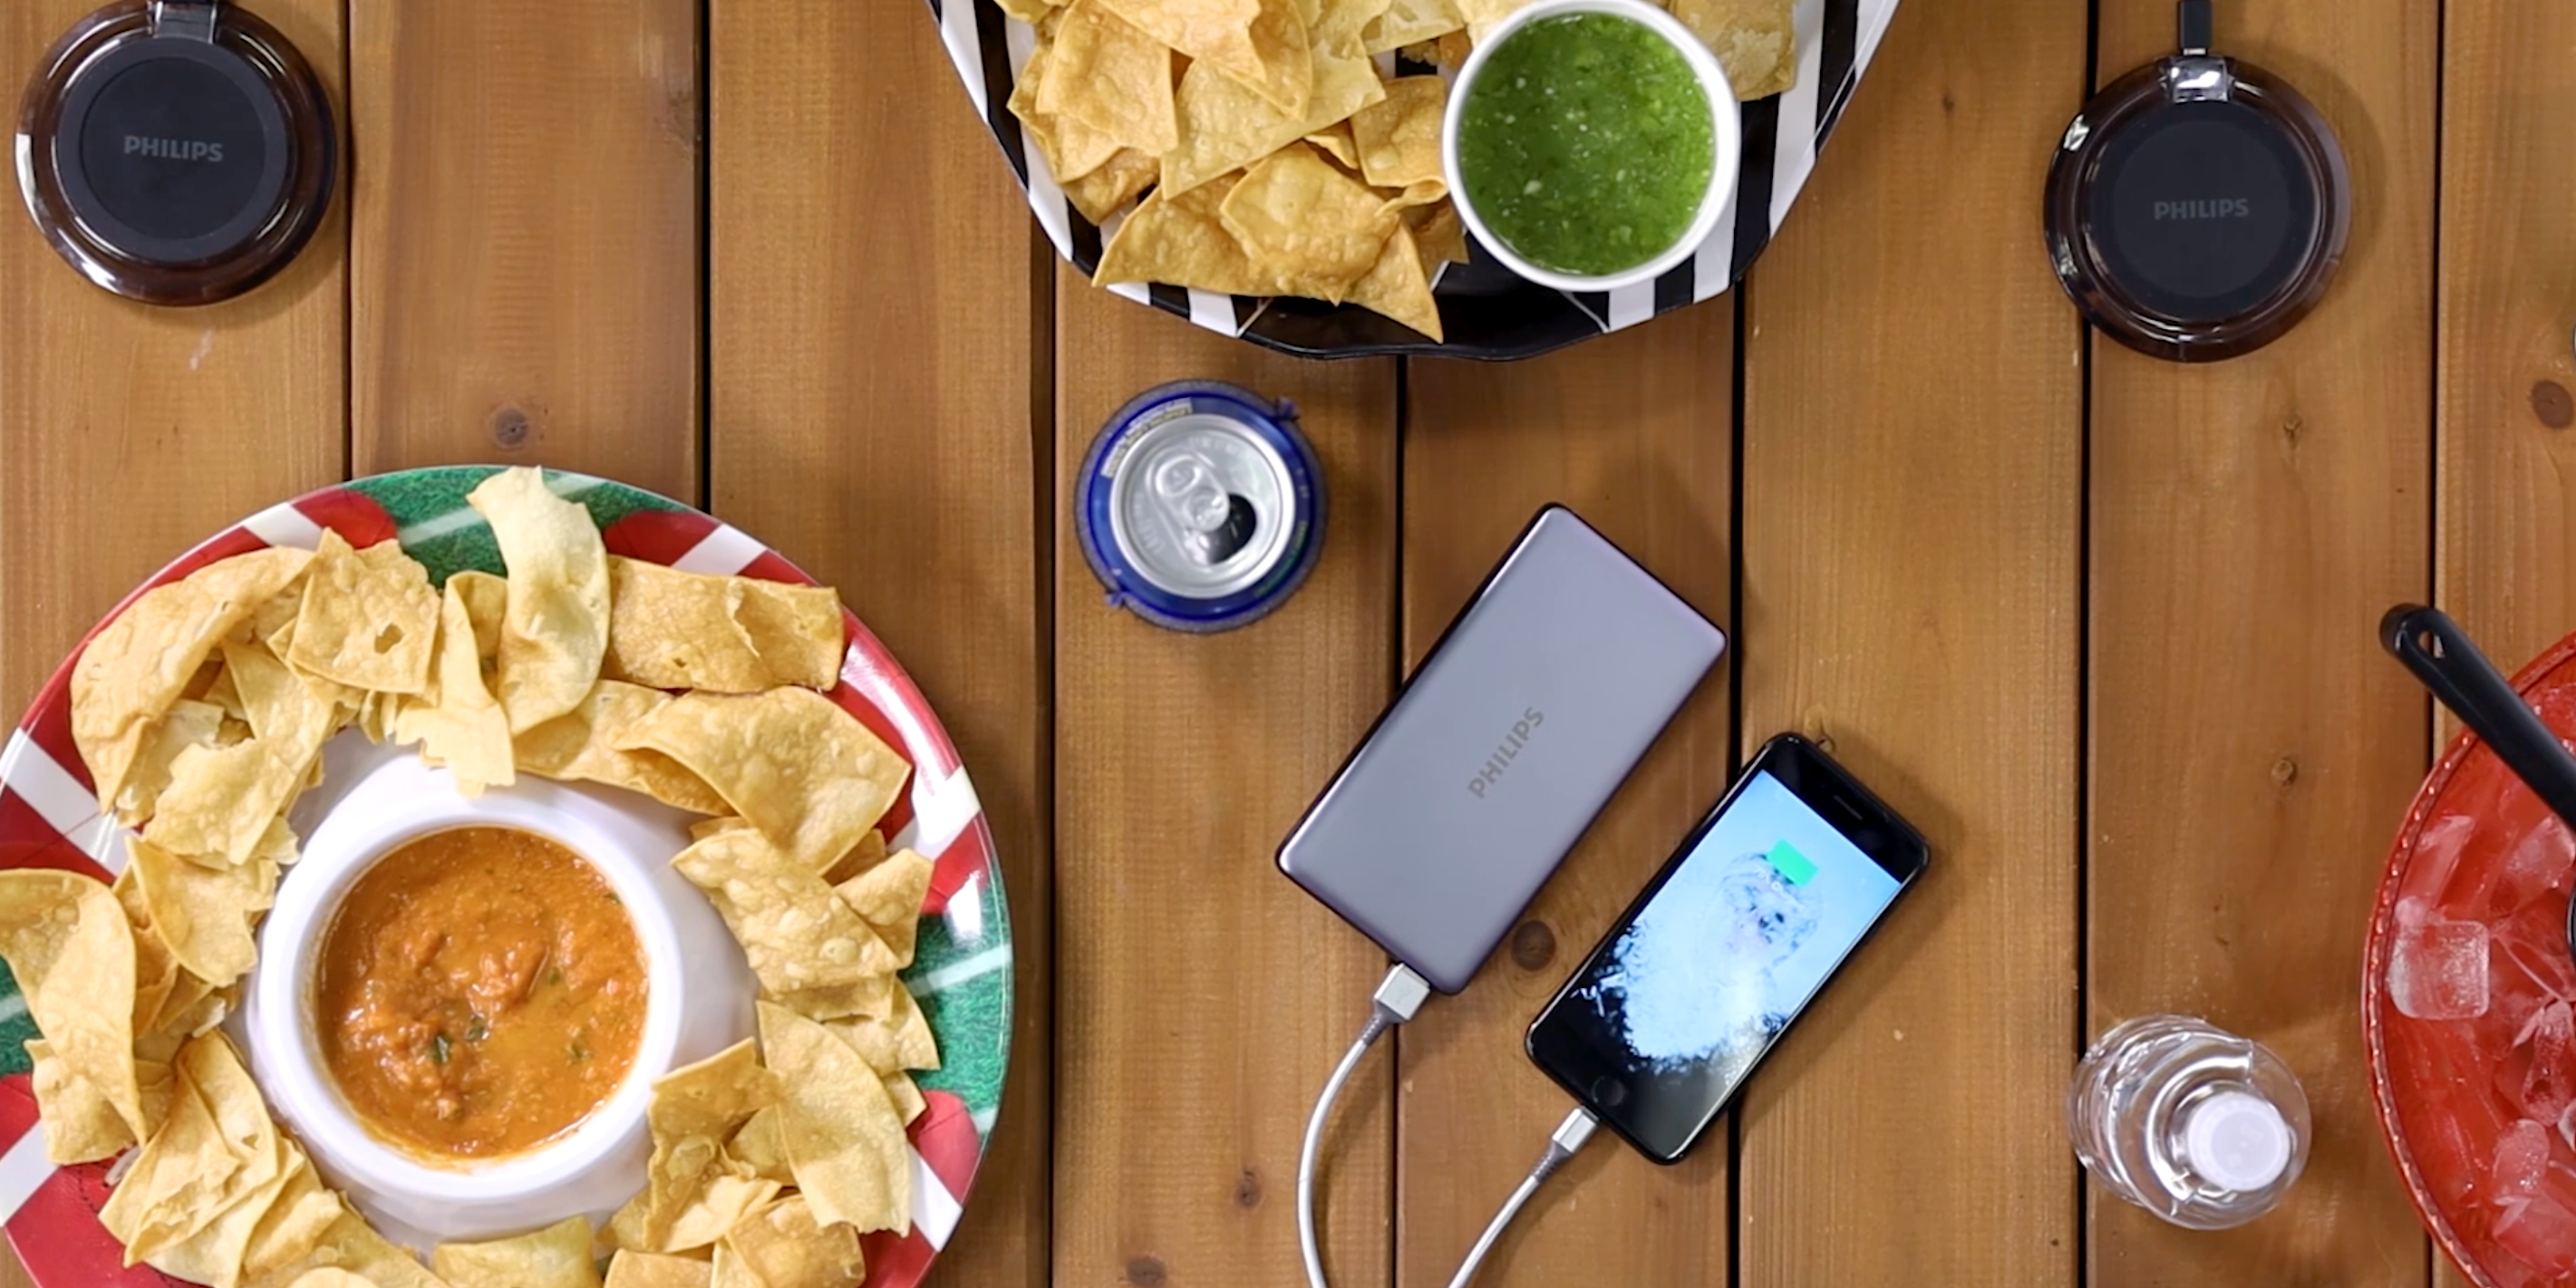 philips power products keep your devices charged